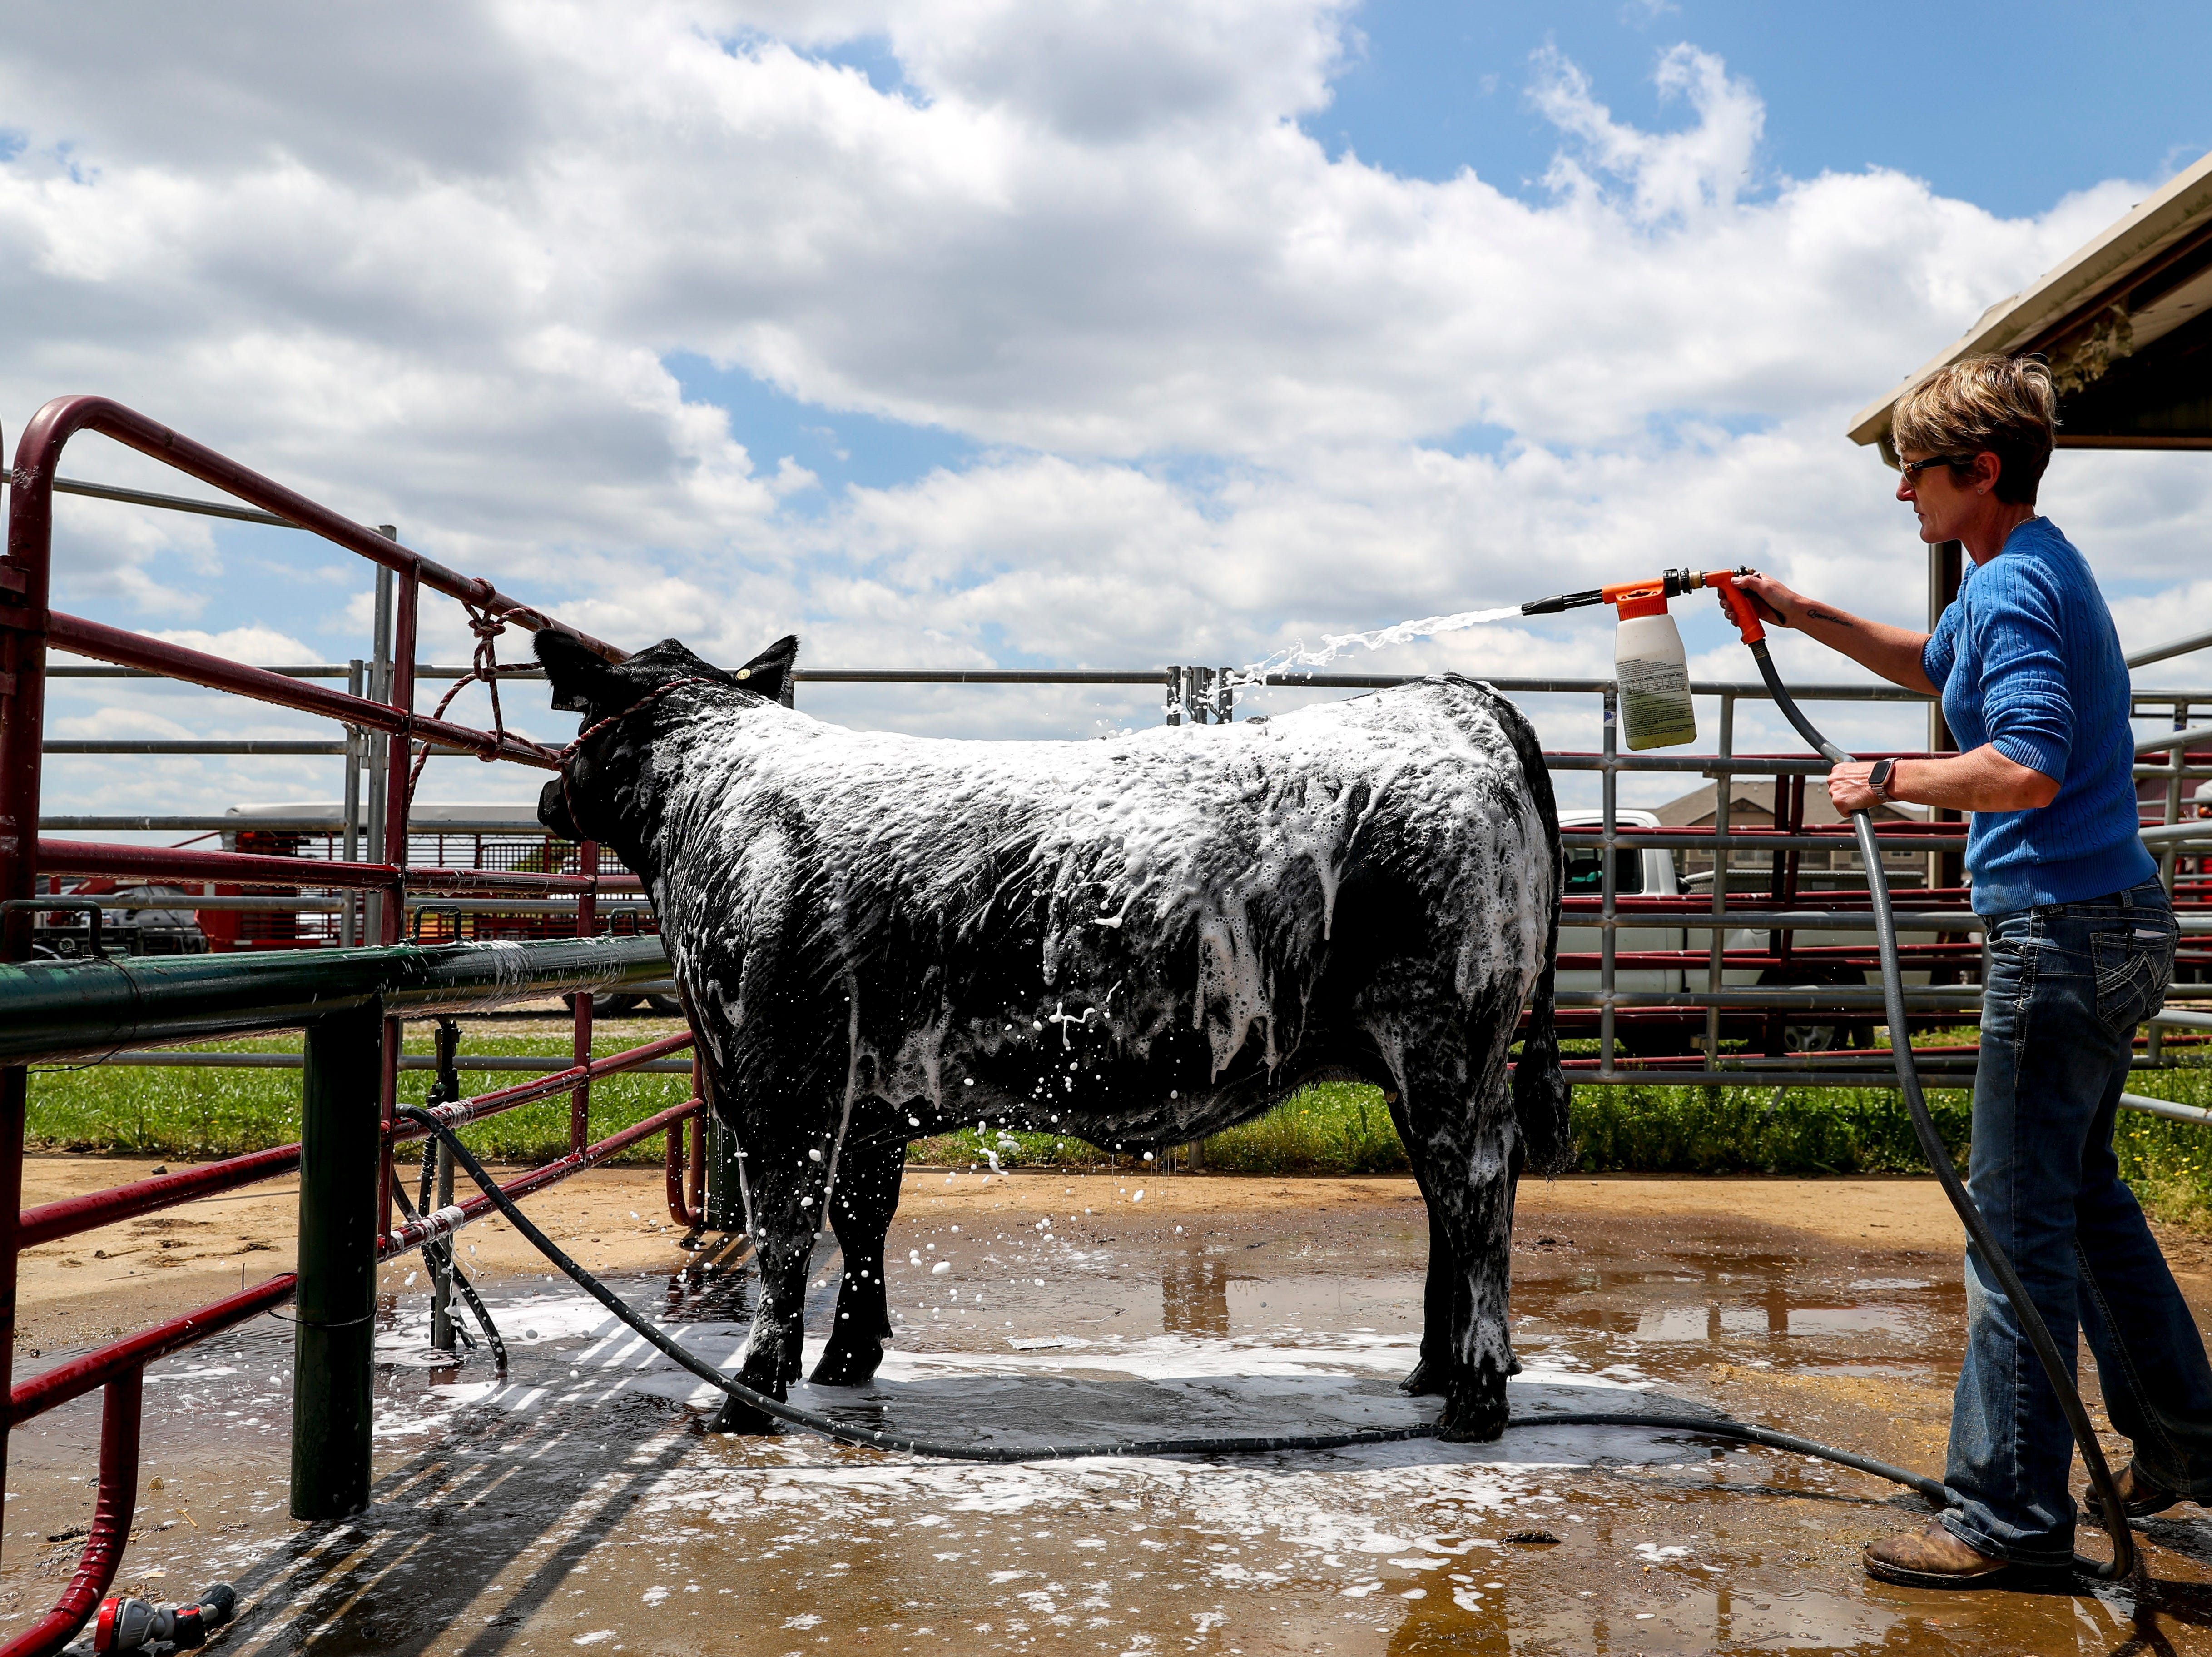 Kaylene Hansen washes off Buddy, who won class 9 at the 69th annual Clarksville Area Junior Better Beef Show at the John Bartee Agricultural Center in Clarksville, Tenn., on Tuesday, May 14, 2019.